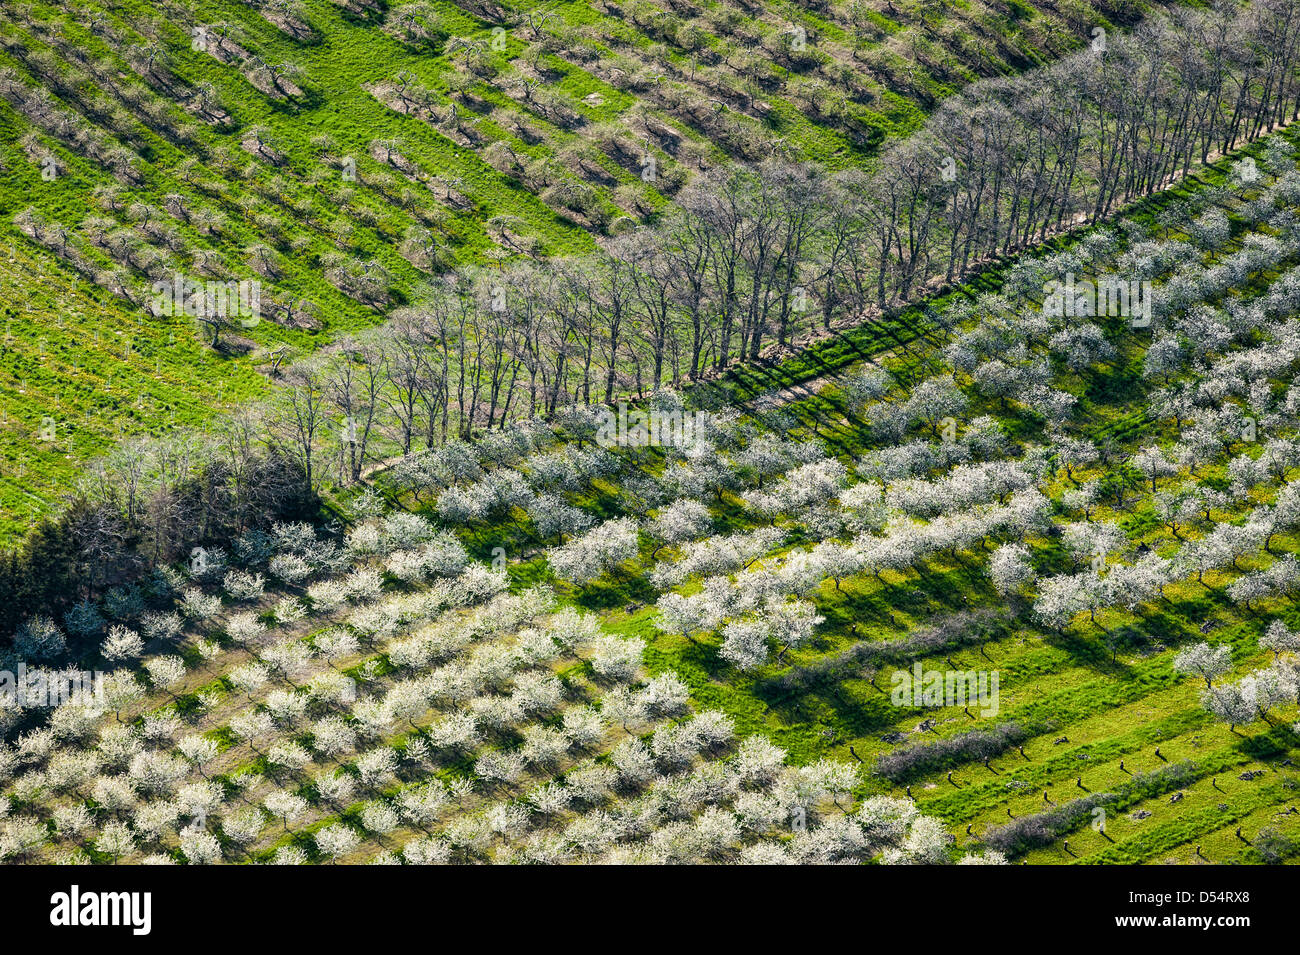 Aerial view of cherry orchard spring blossoms in Mason County, Michigan, USA. Photography by Jeffrey Wickett, NorthLight Photography. Stock Photo